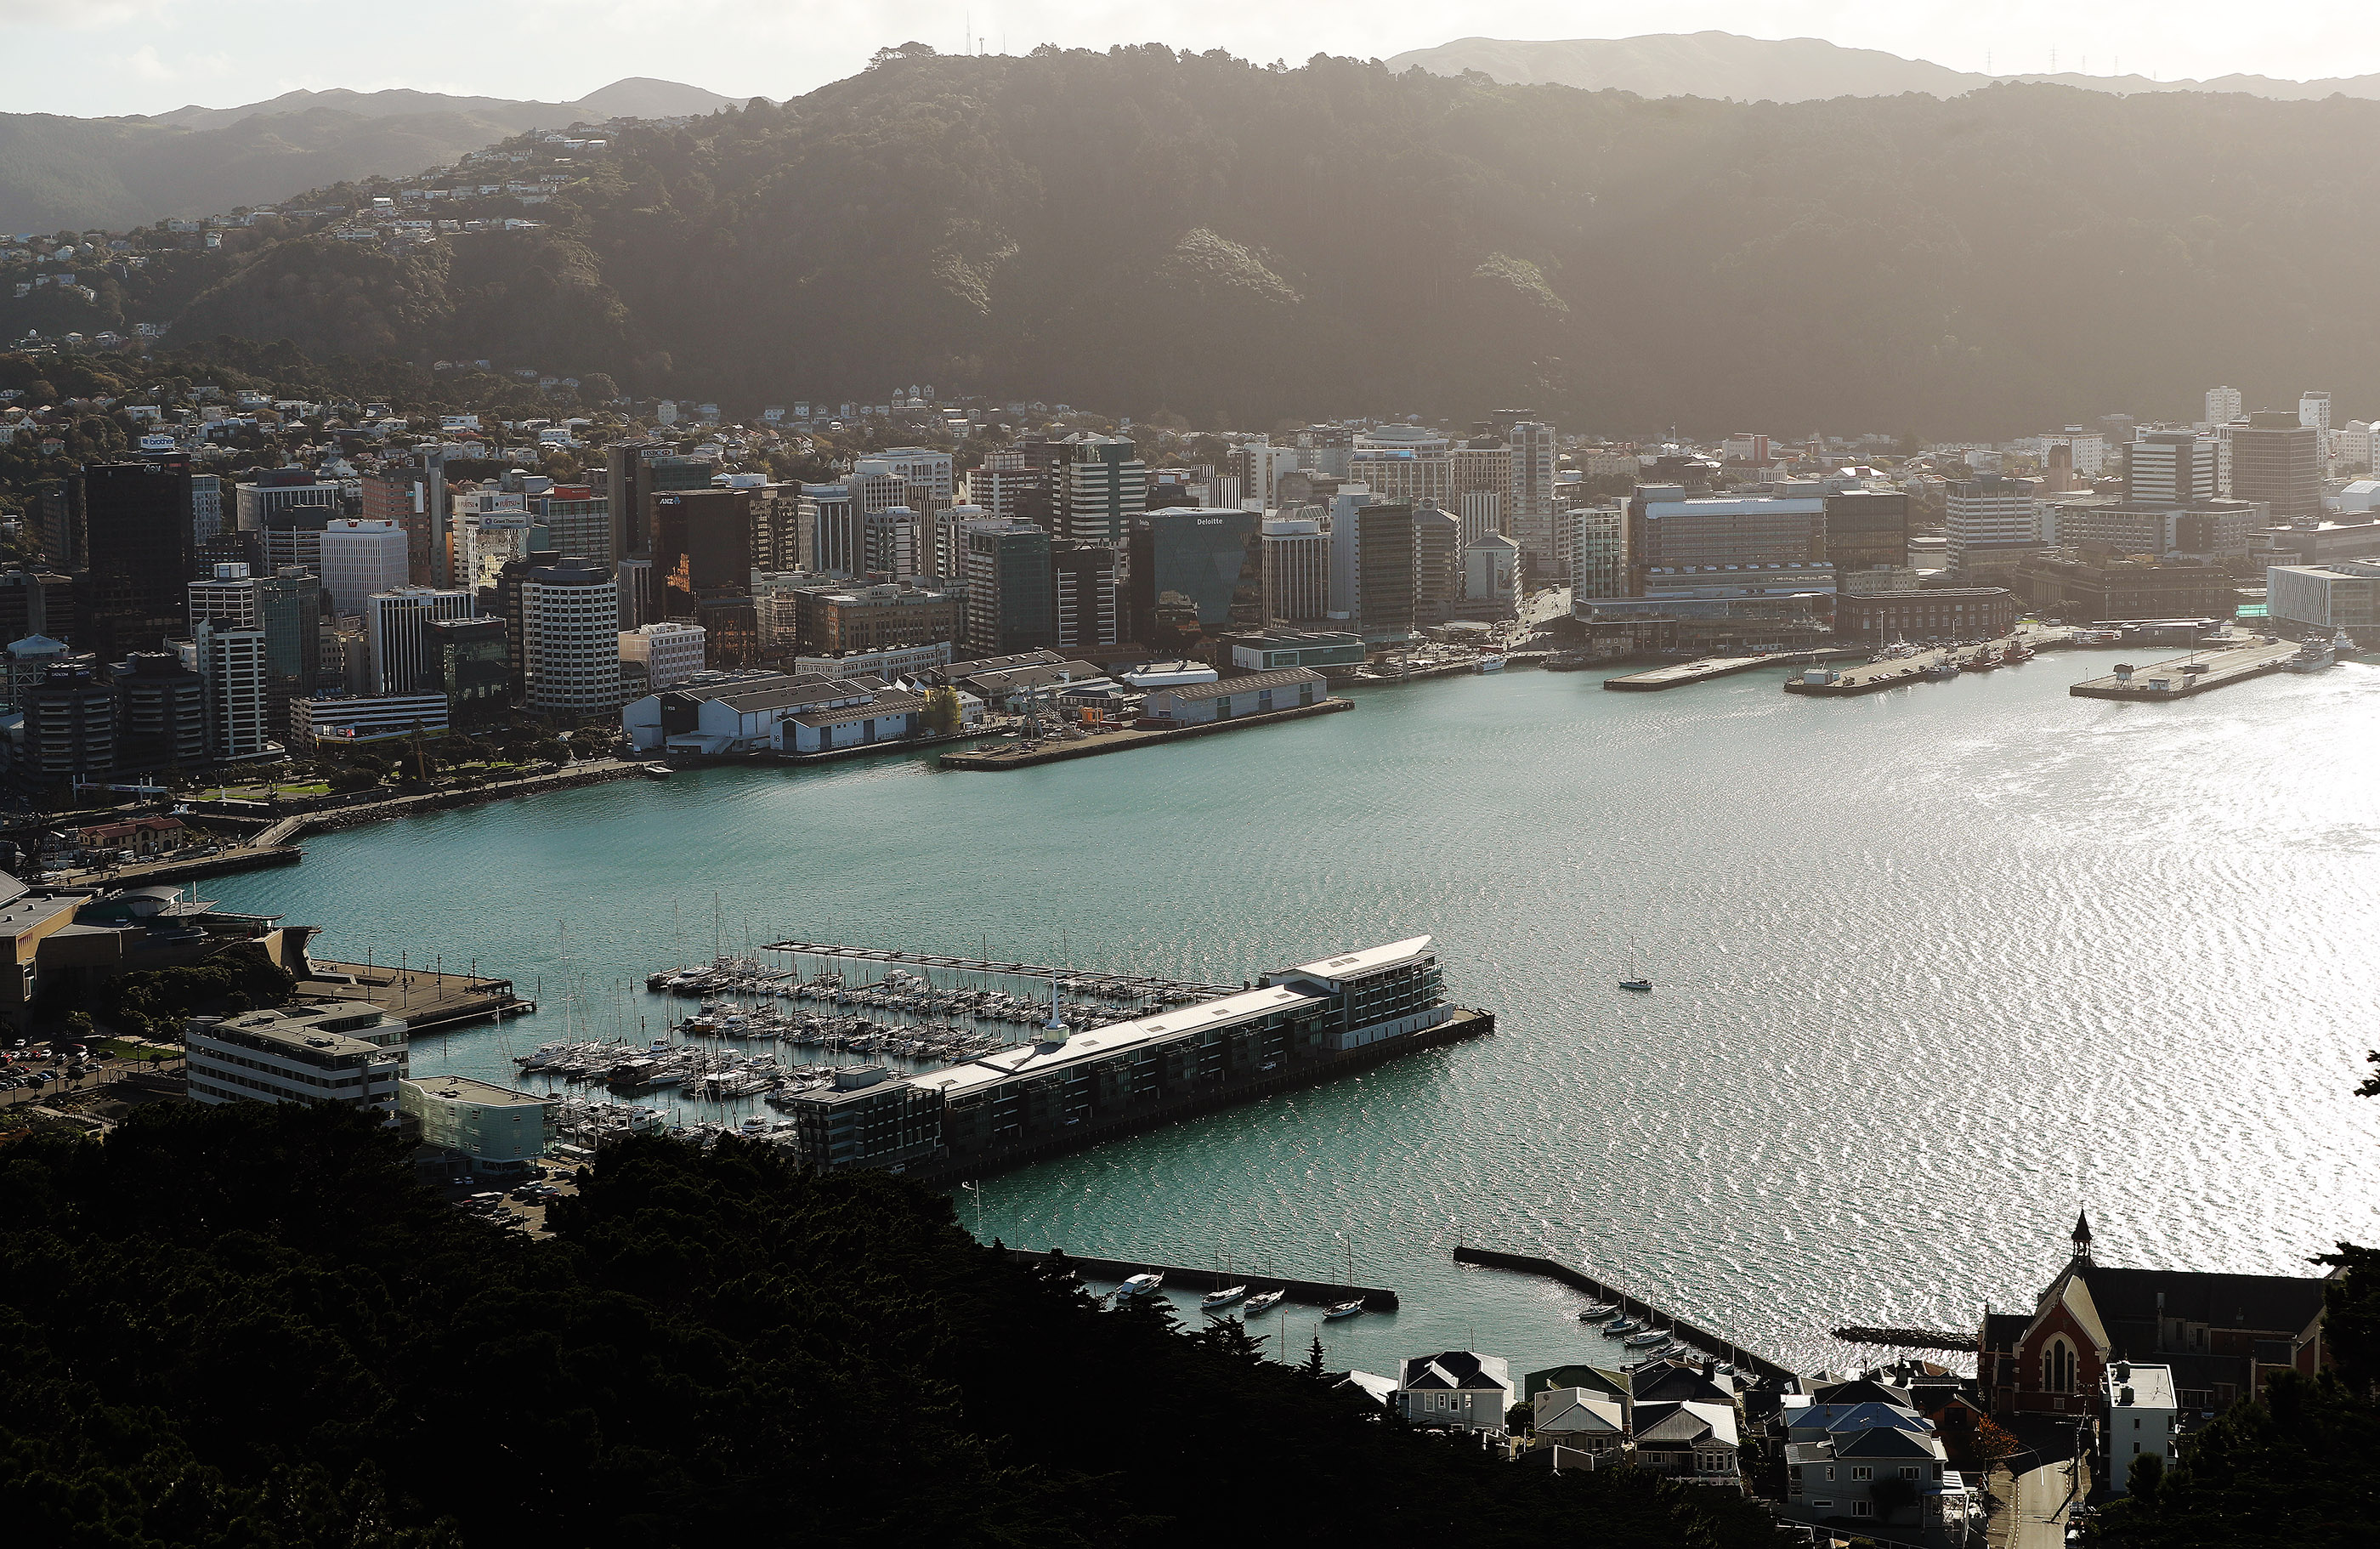 The harbour in Wellington, New Zealand on Monday, May 20, 2019.